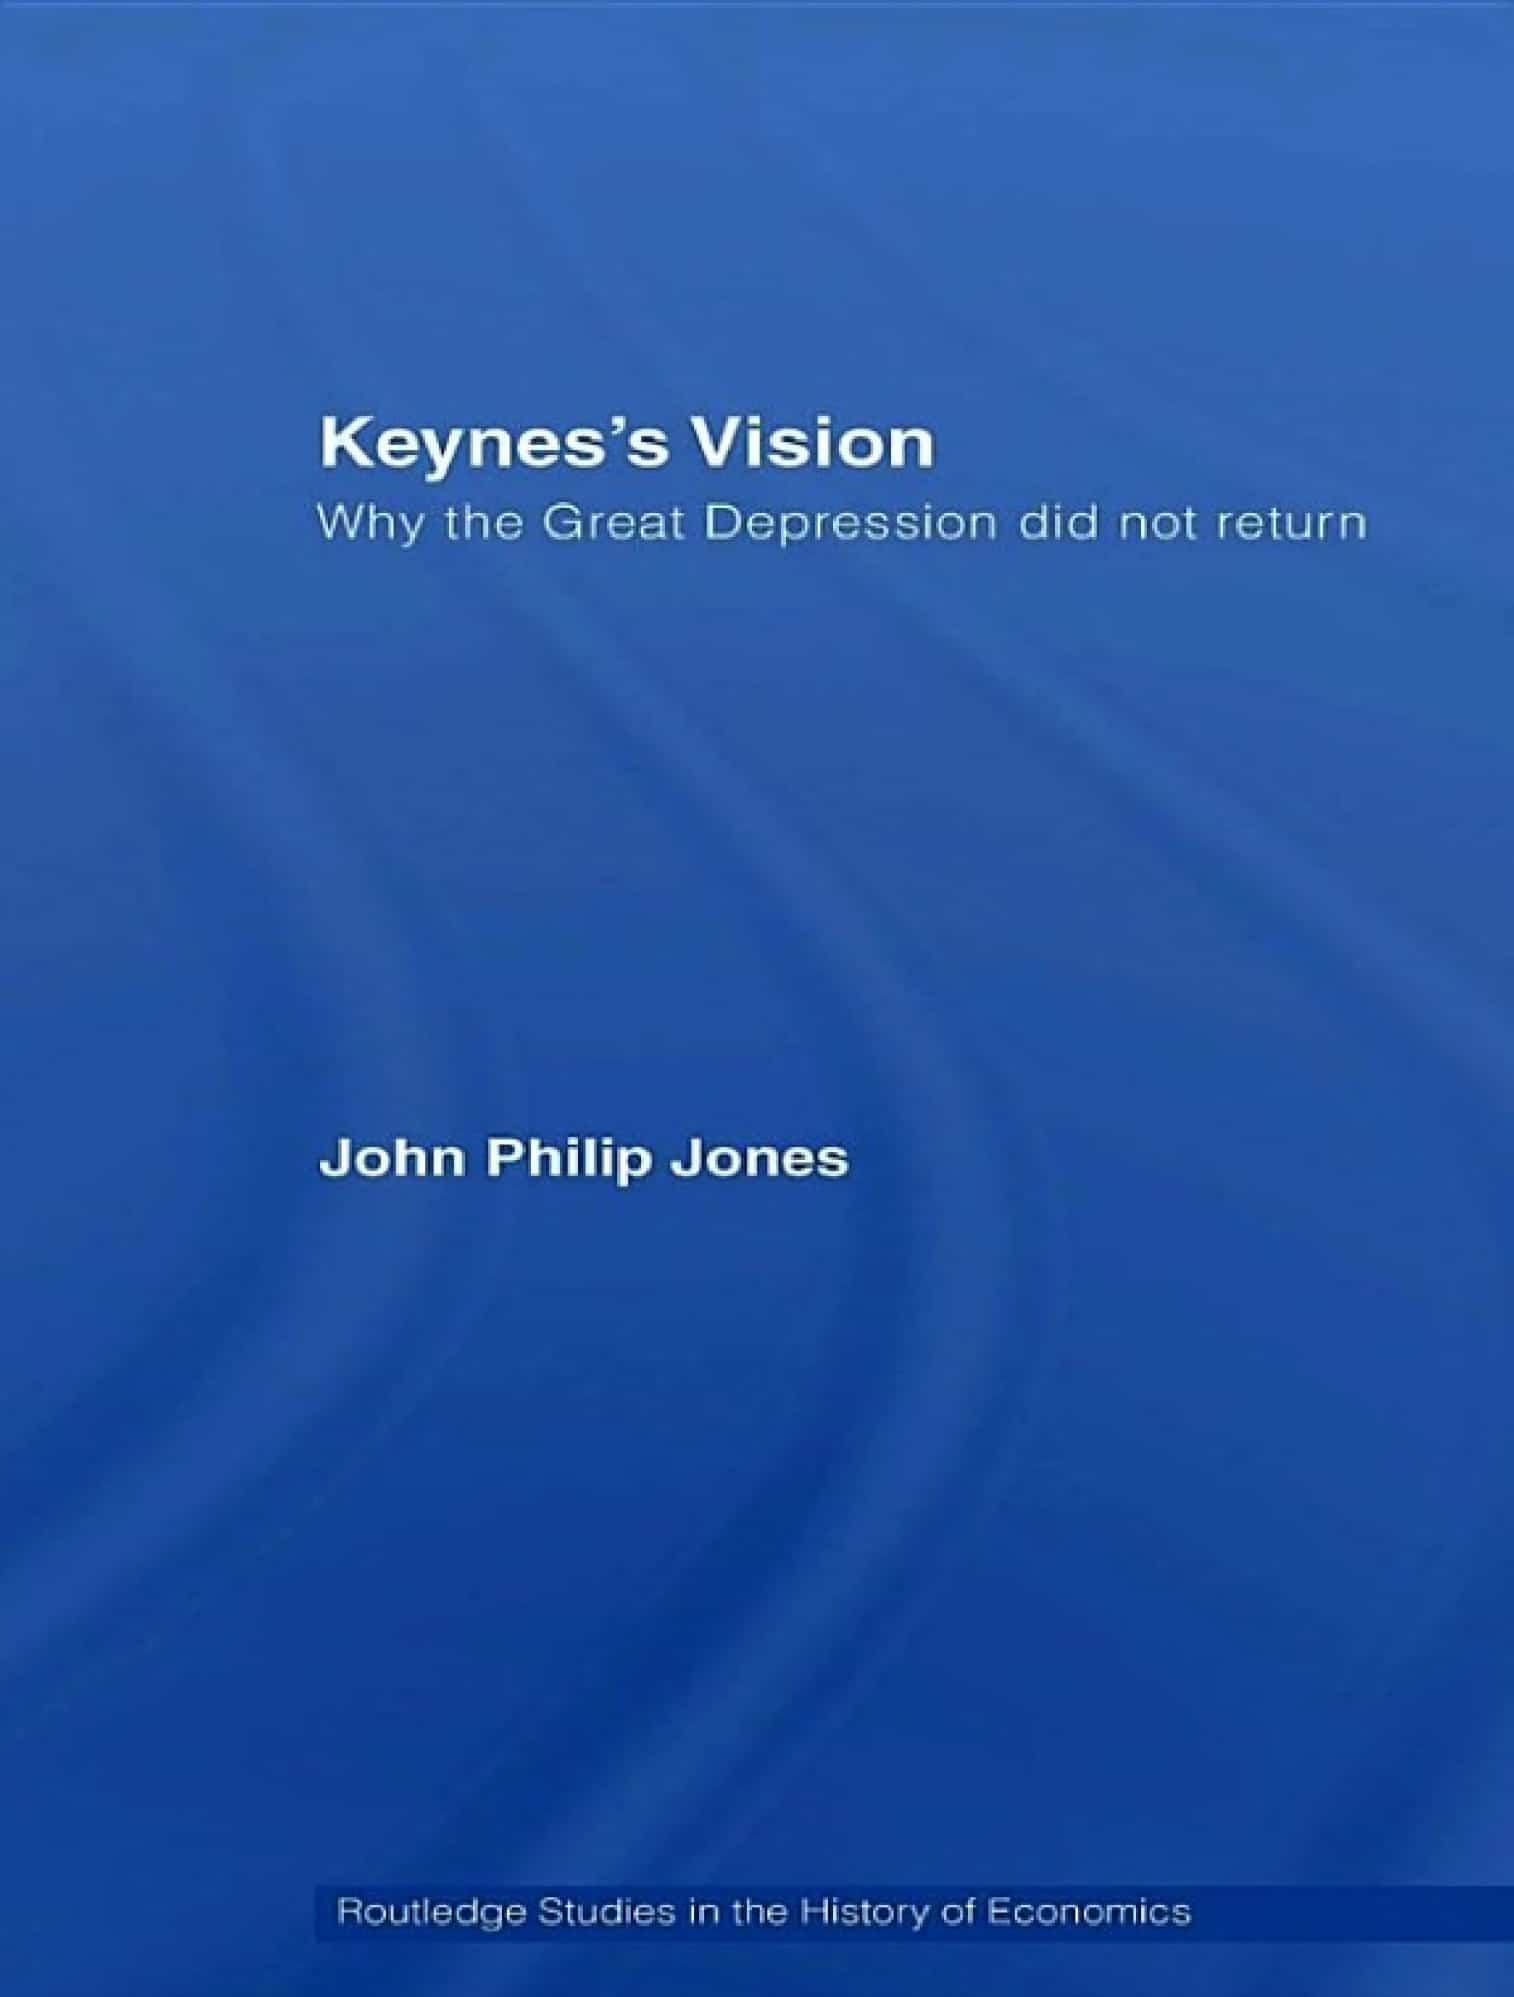 Keynes's Vision - Keynes's Vision: Why the Great Depression Did Not Return